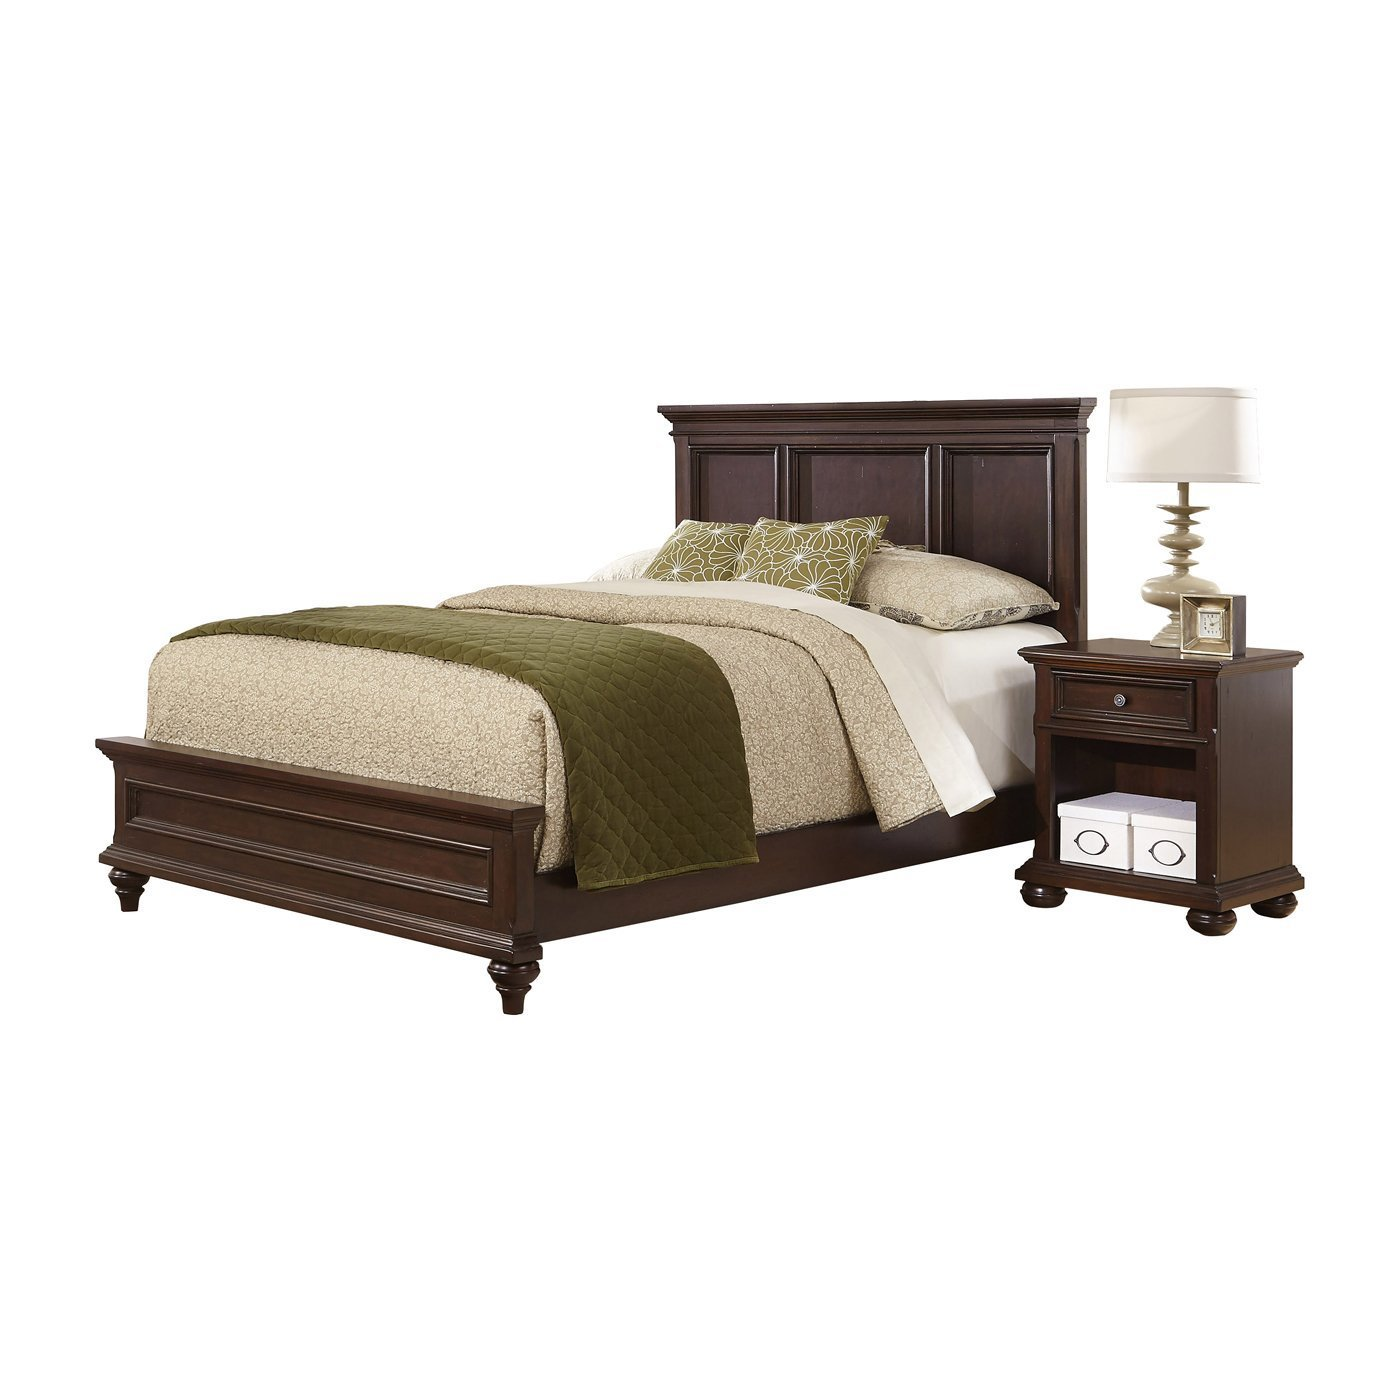 Best Home Styles 5528 Colonial Classic Bedroom Set Atg Stores With Pictures